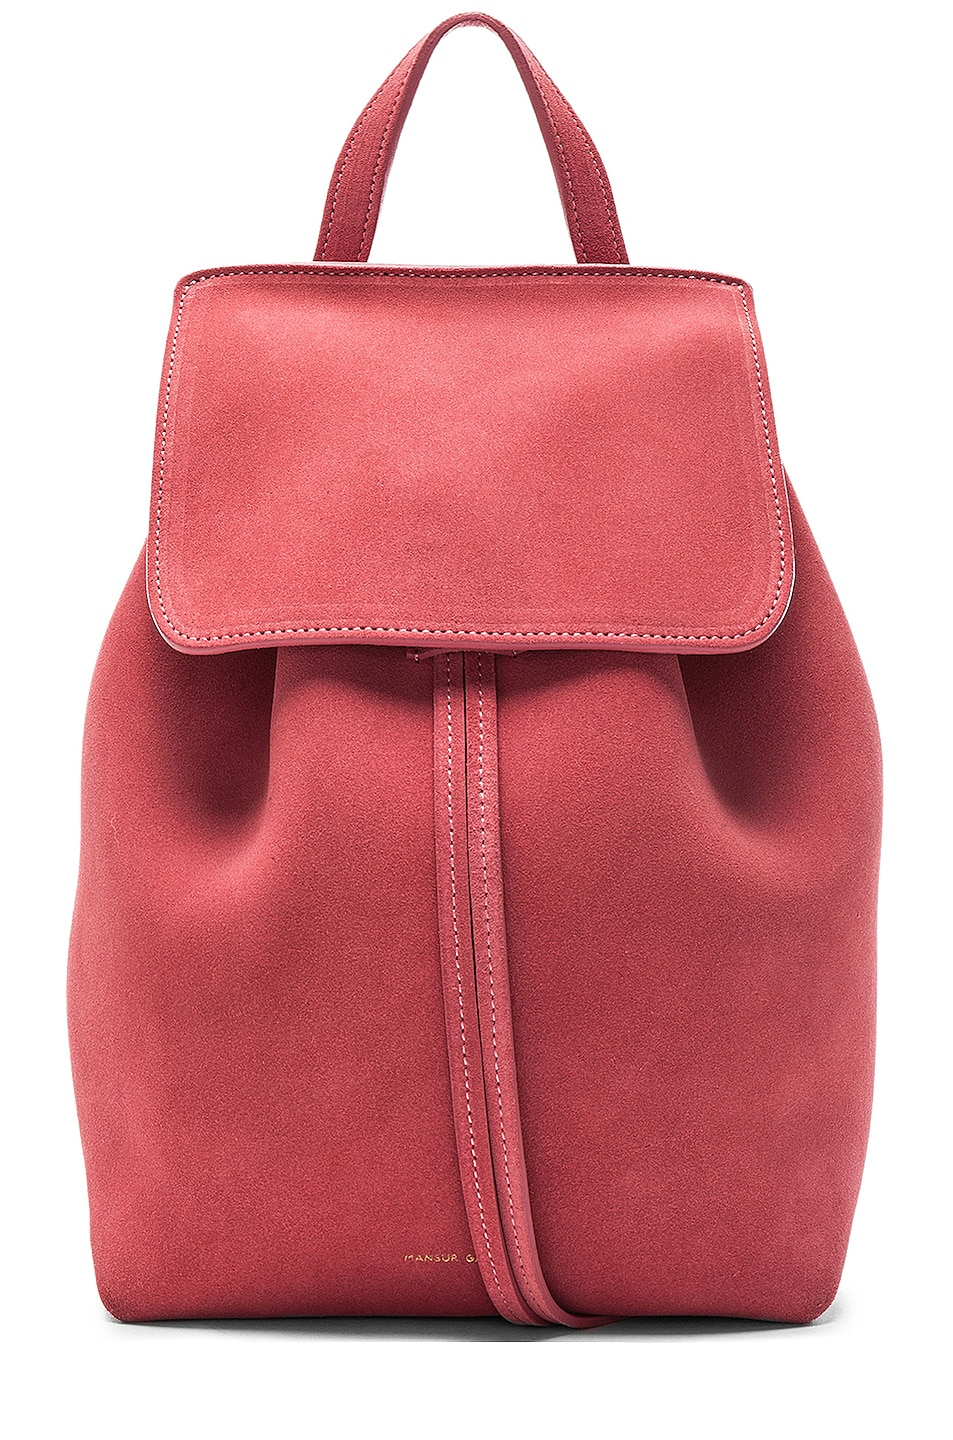 Image 1 of Mansur Gavriel Mini Backpack in Blush Suede